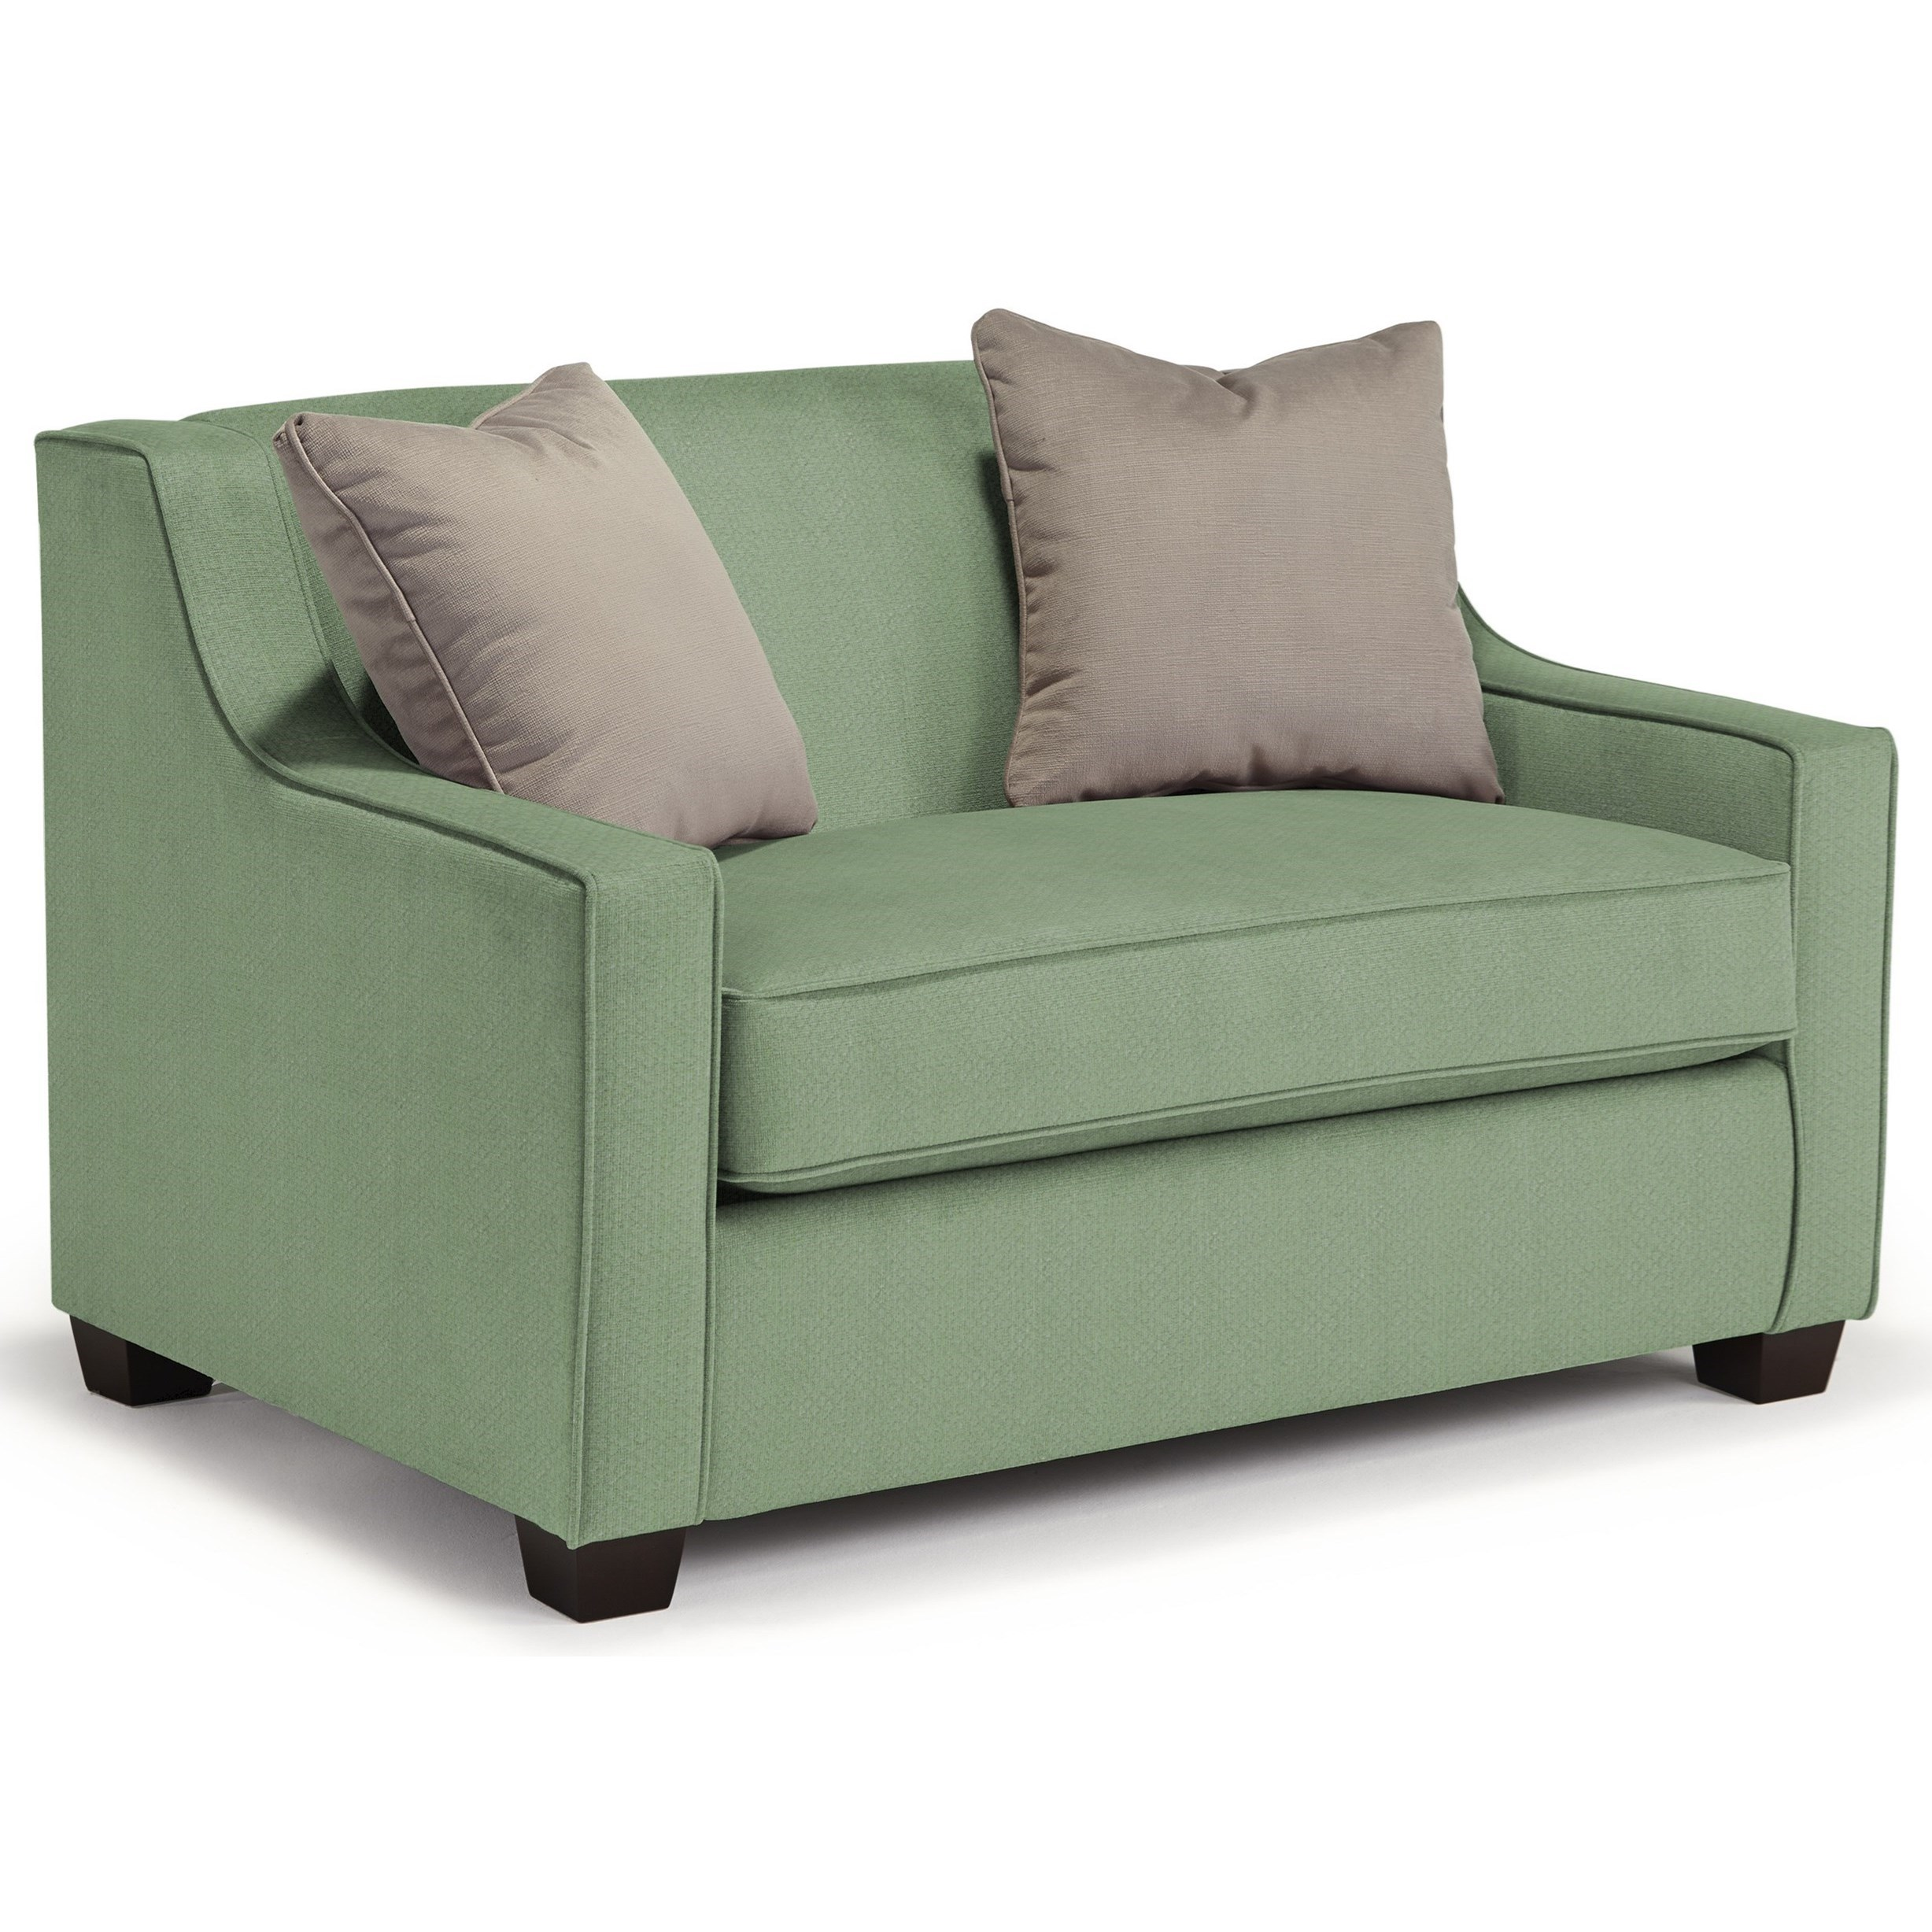 Marinette Twin Air Dream Sleeper Chair by Best Home Furnishings at Baer's Furniture